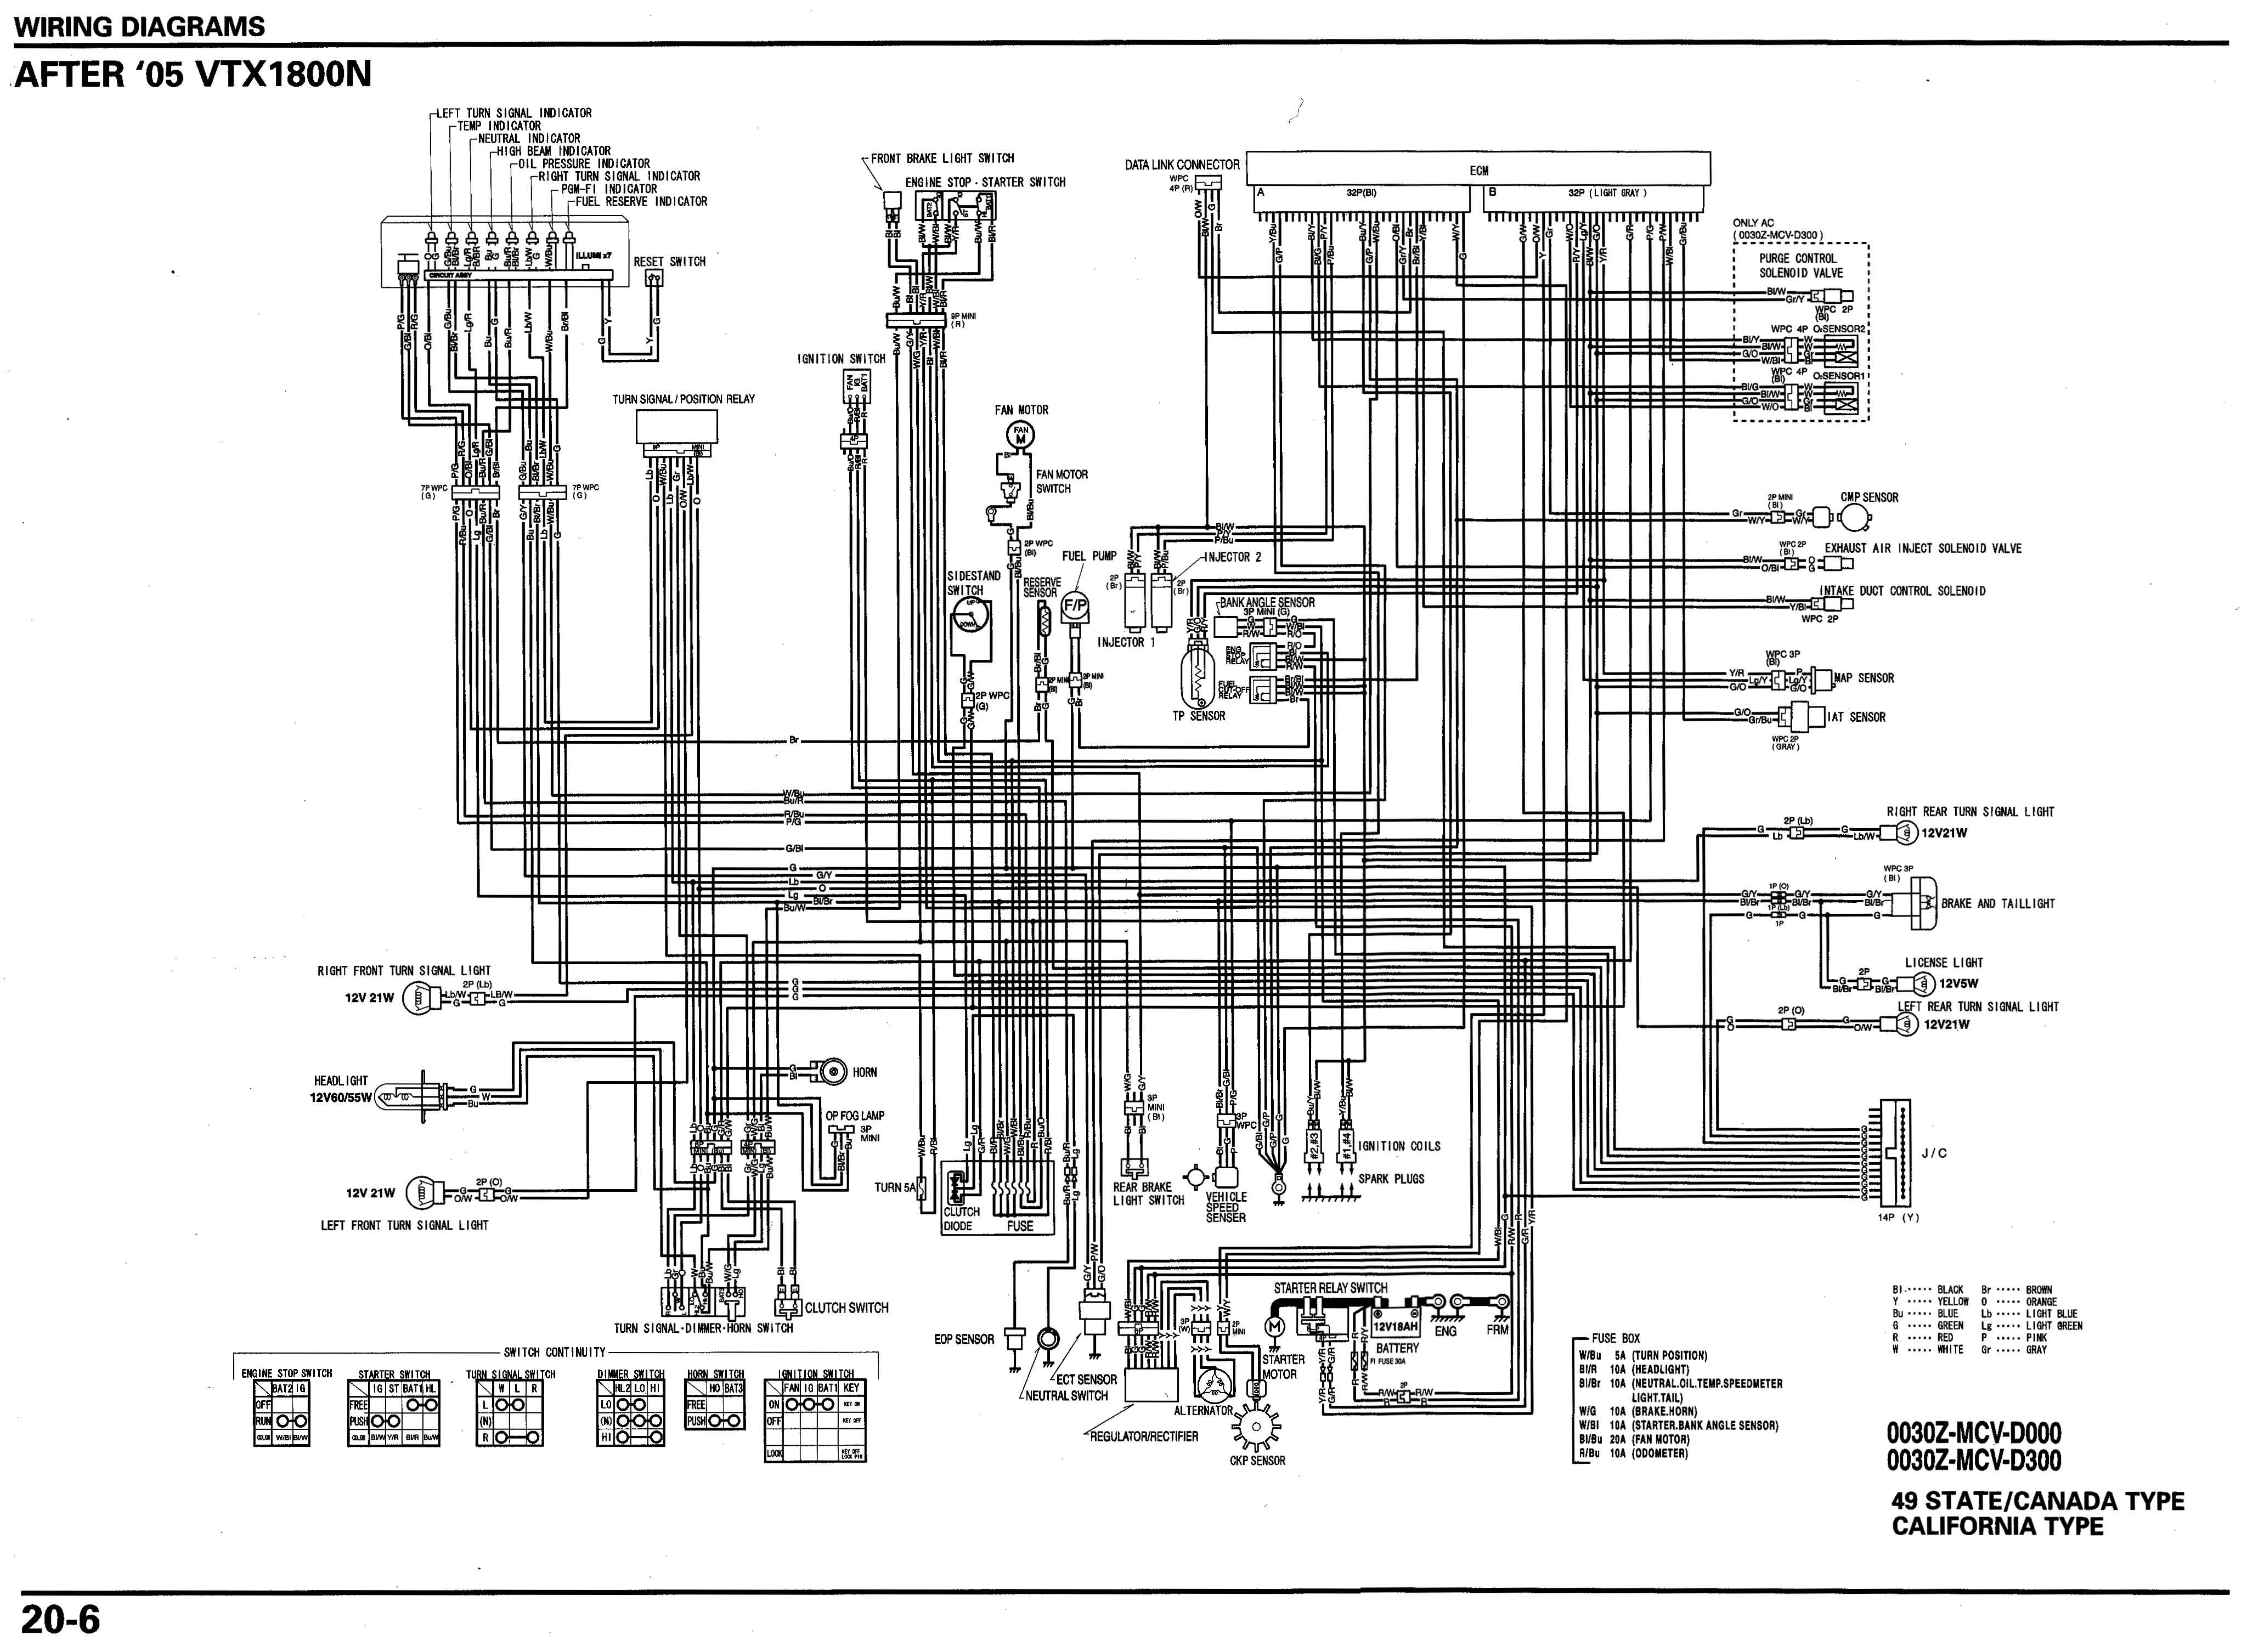 motorcycle wire schematics  bareass choppers motorcycle tech pages 06 vtx 1800n schematic